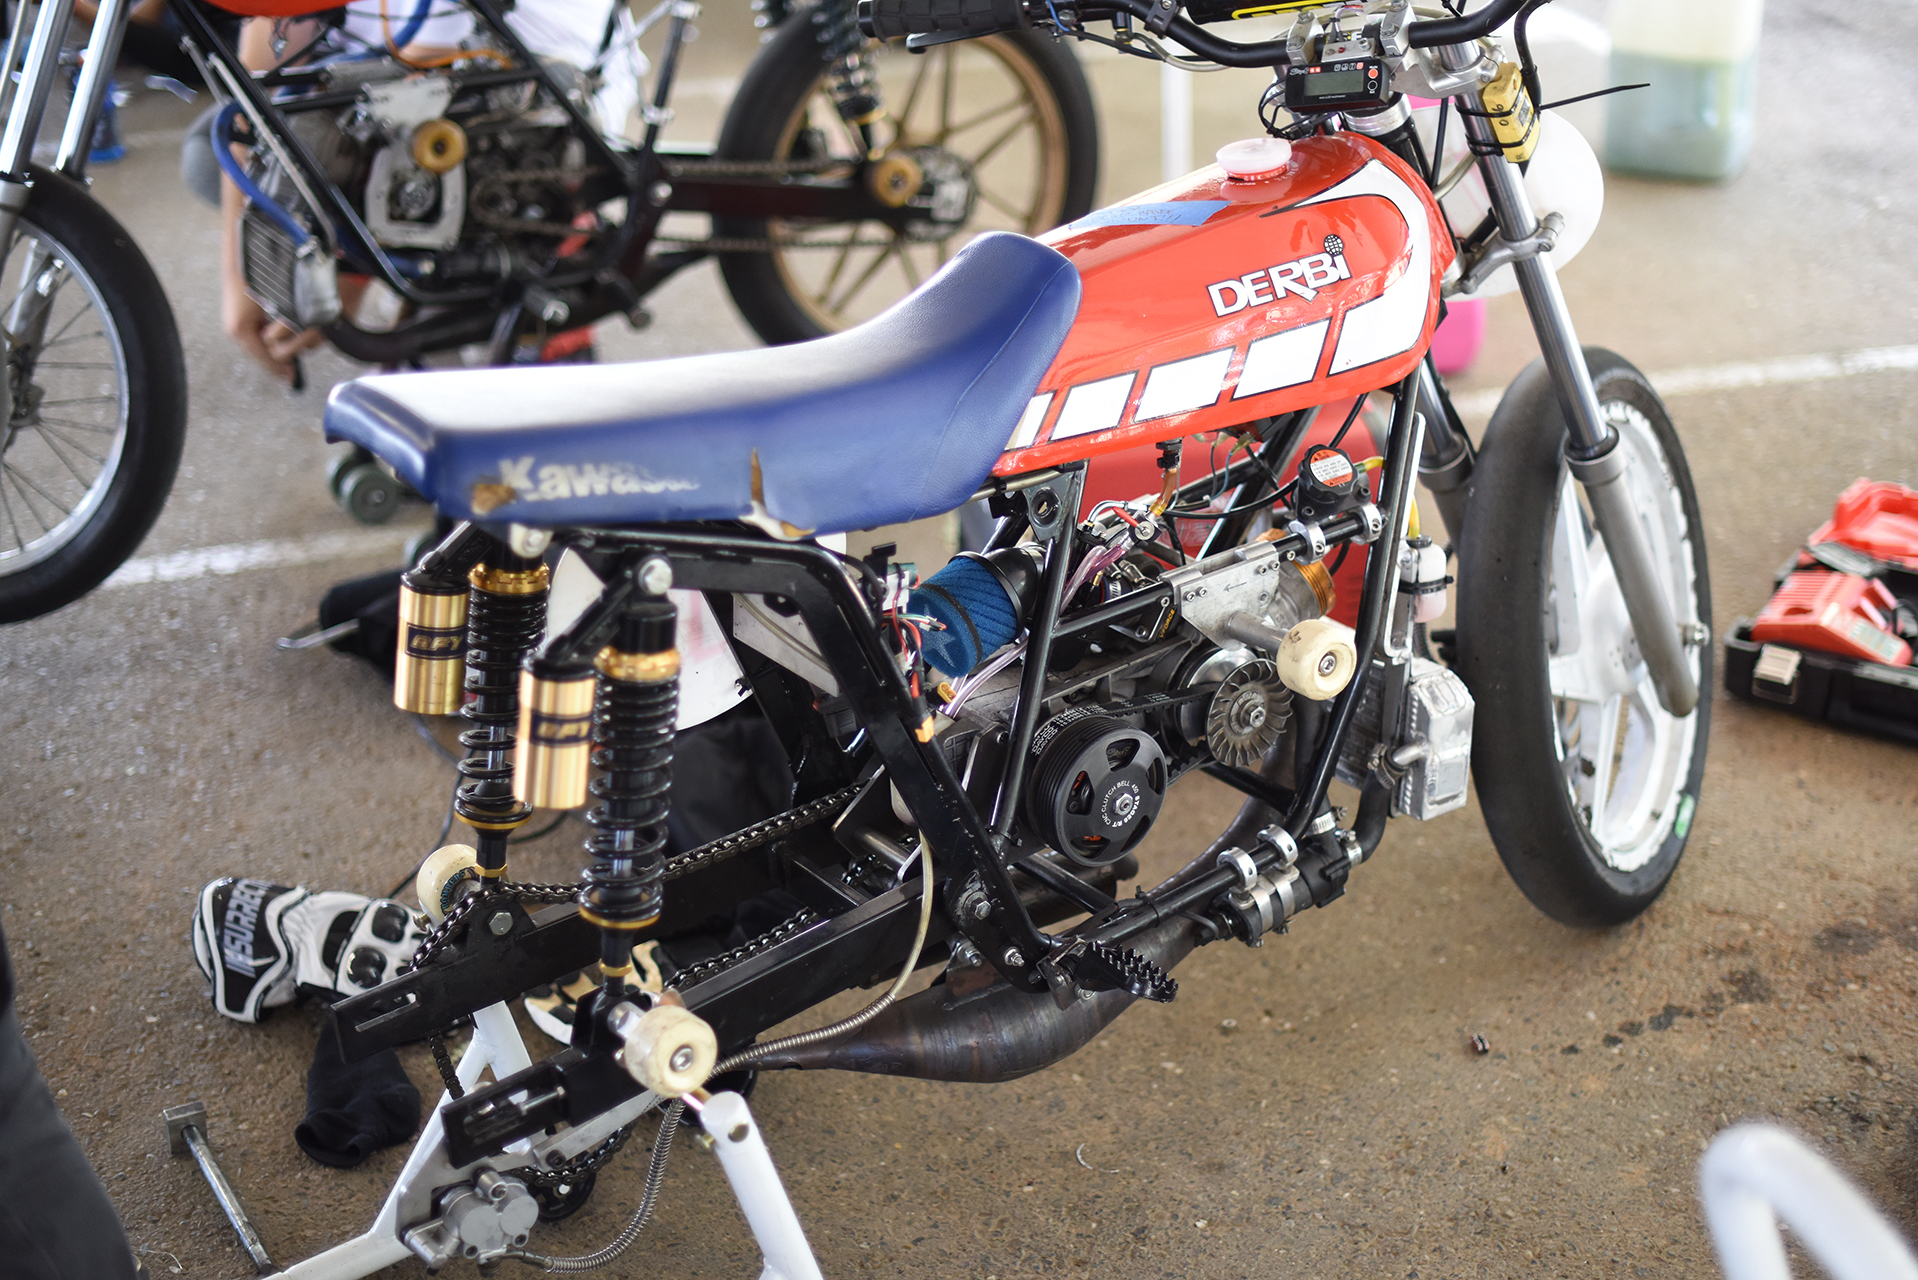 Shannon Hall brought two of these trick Derbis down from Seattle to race with his girlfriend Marly Simpkins. The frame is from a small Derbi dirt bike and the engine is running an 80cc top end. Very rapid kit.